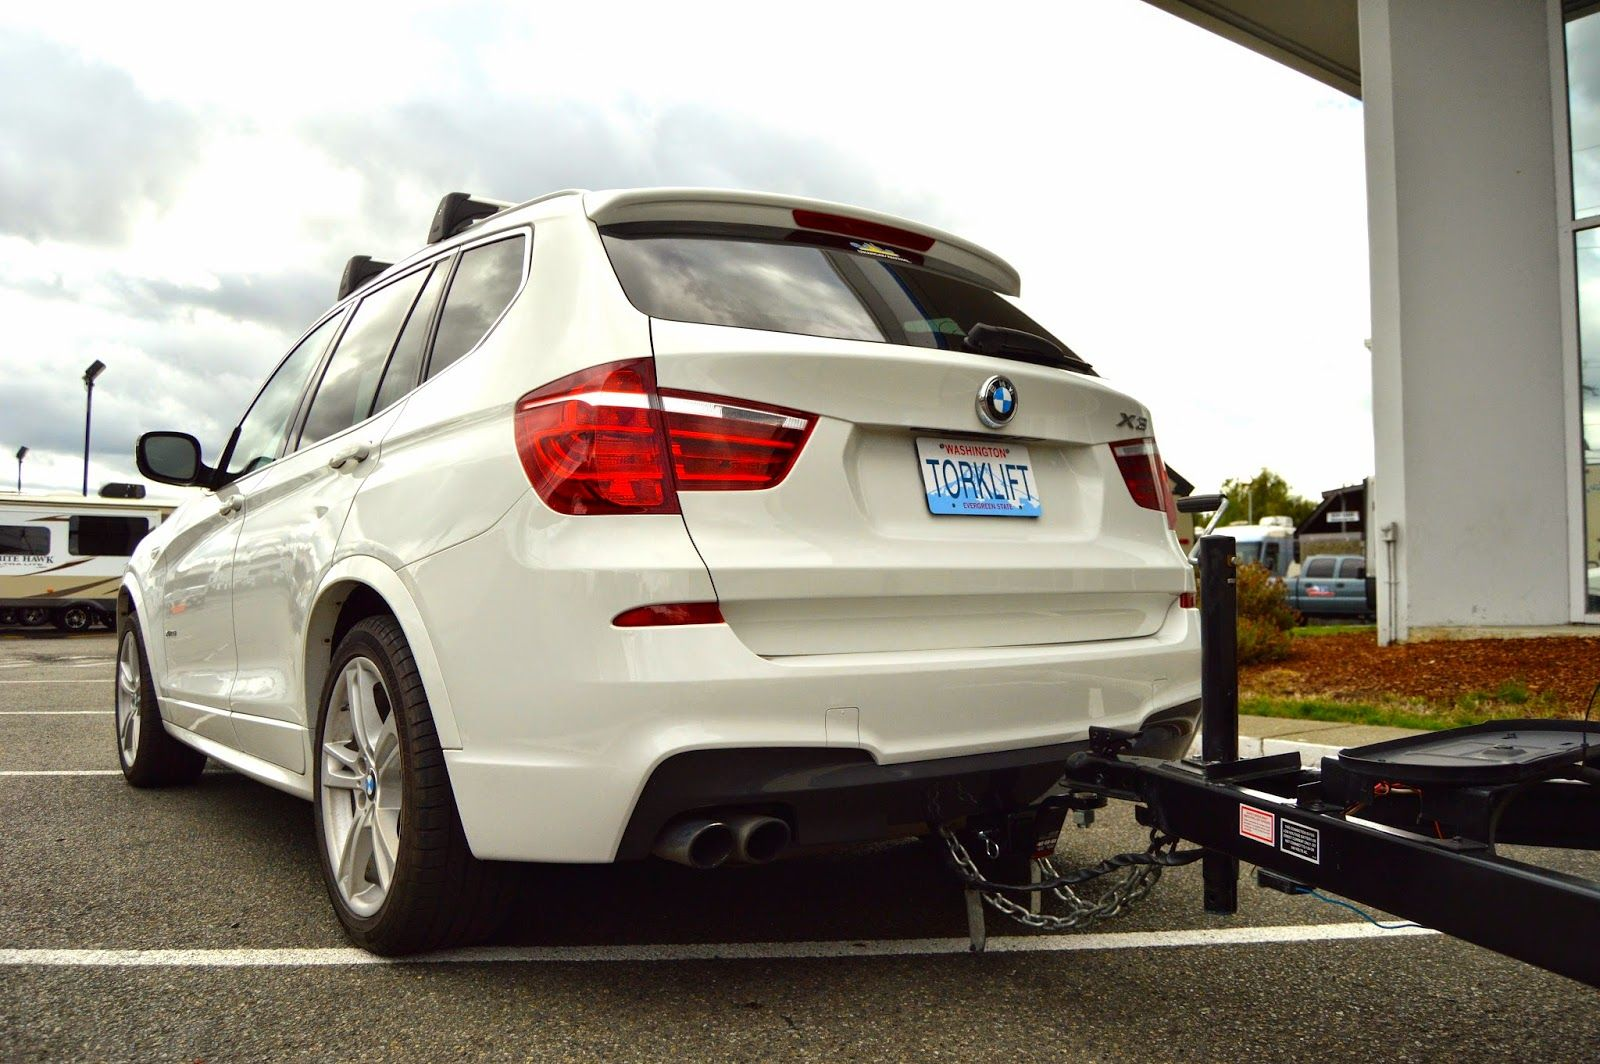 2014 bmw x3 invisi ecohitch trailer hitch torklift central ecohitch eco